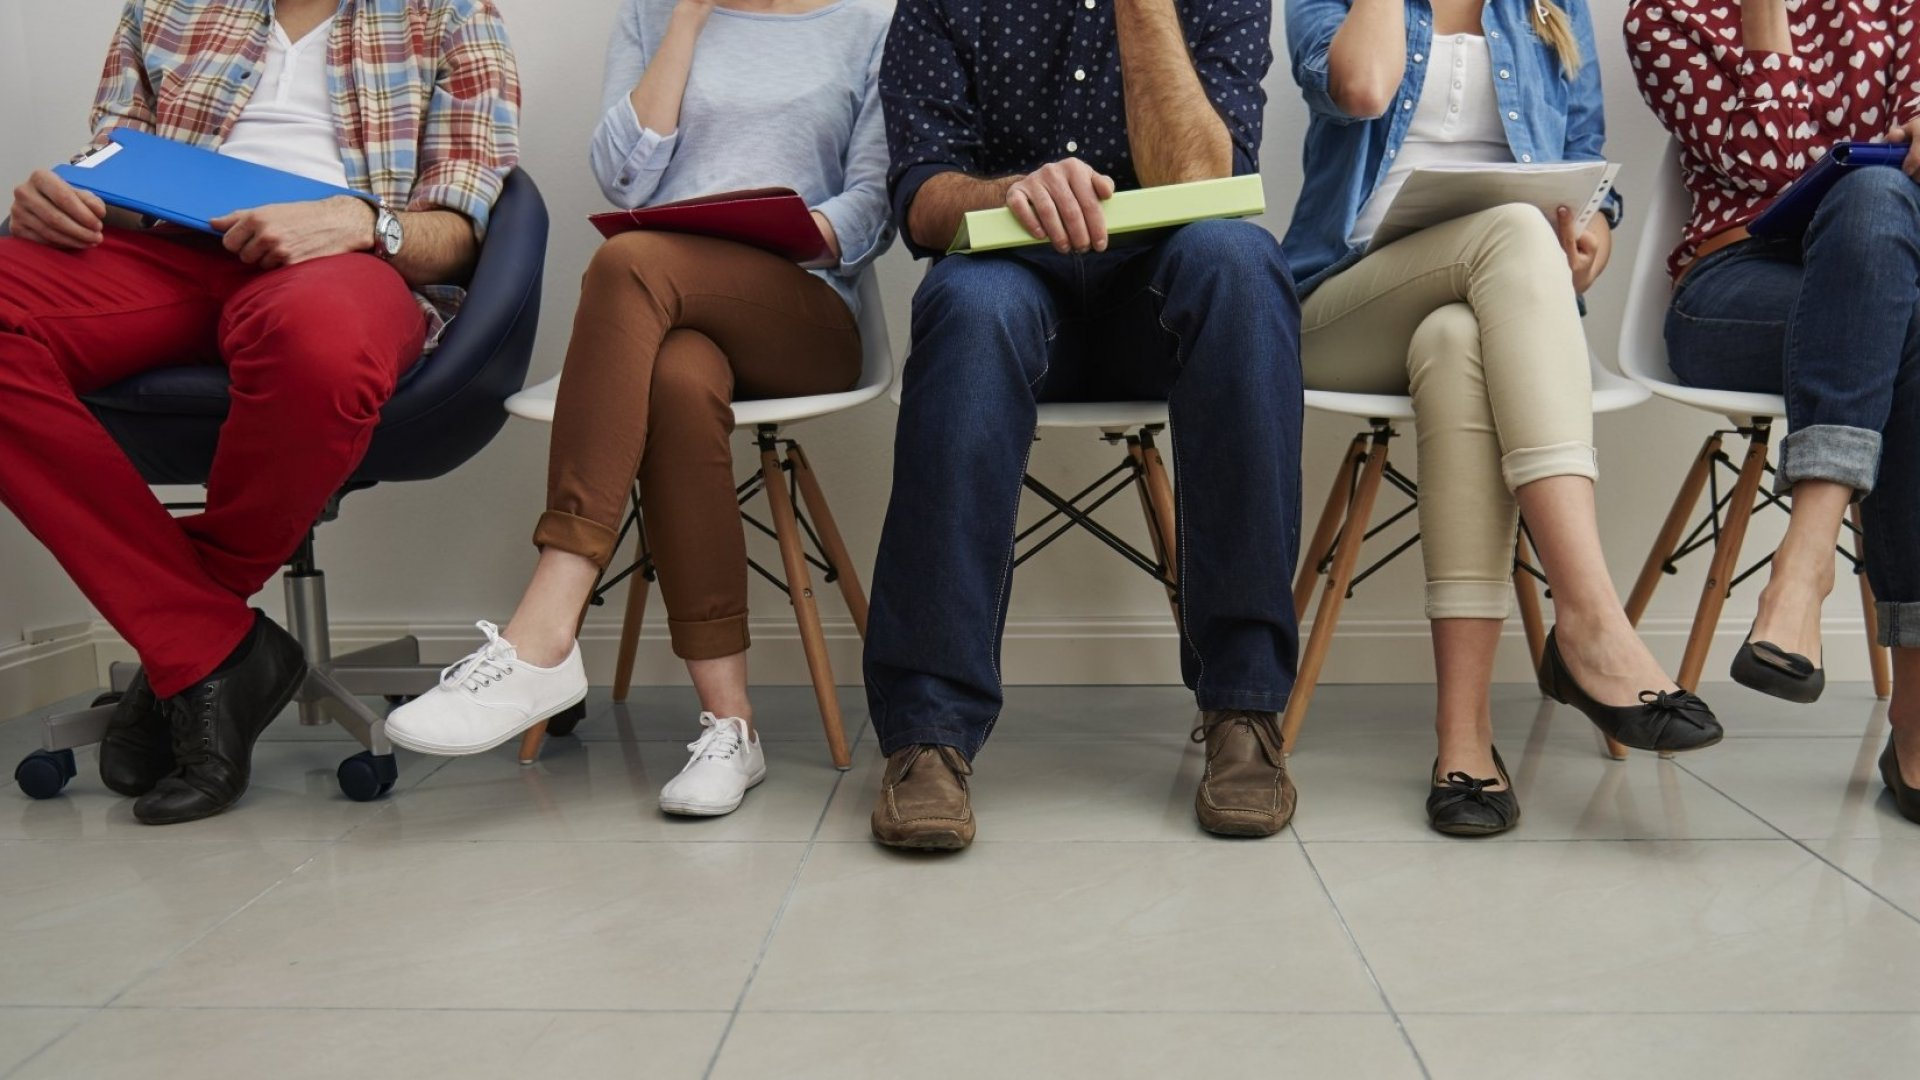 15 Job Interview Questions You Can Use to Nail the Right Candidate